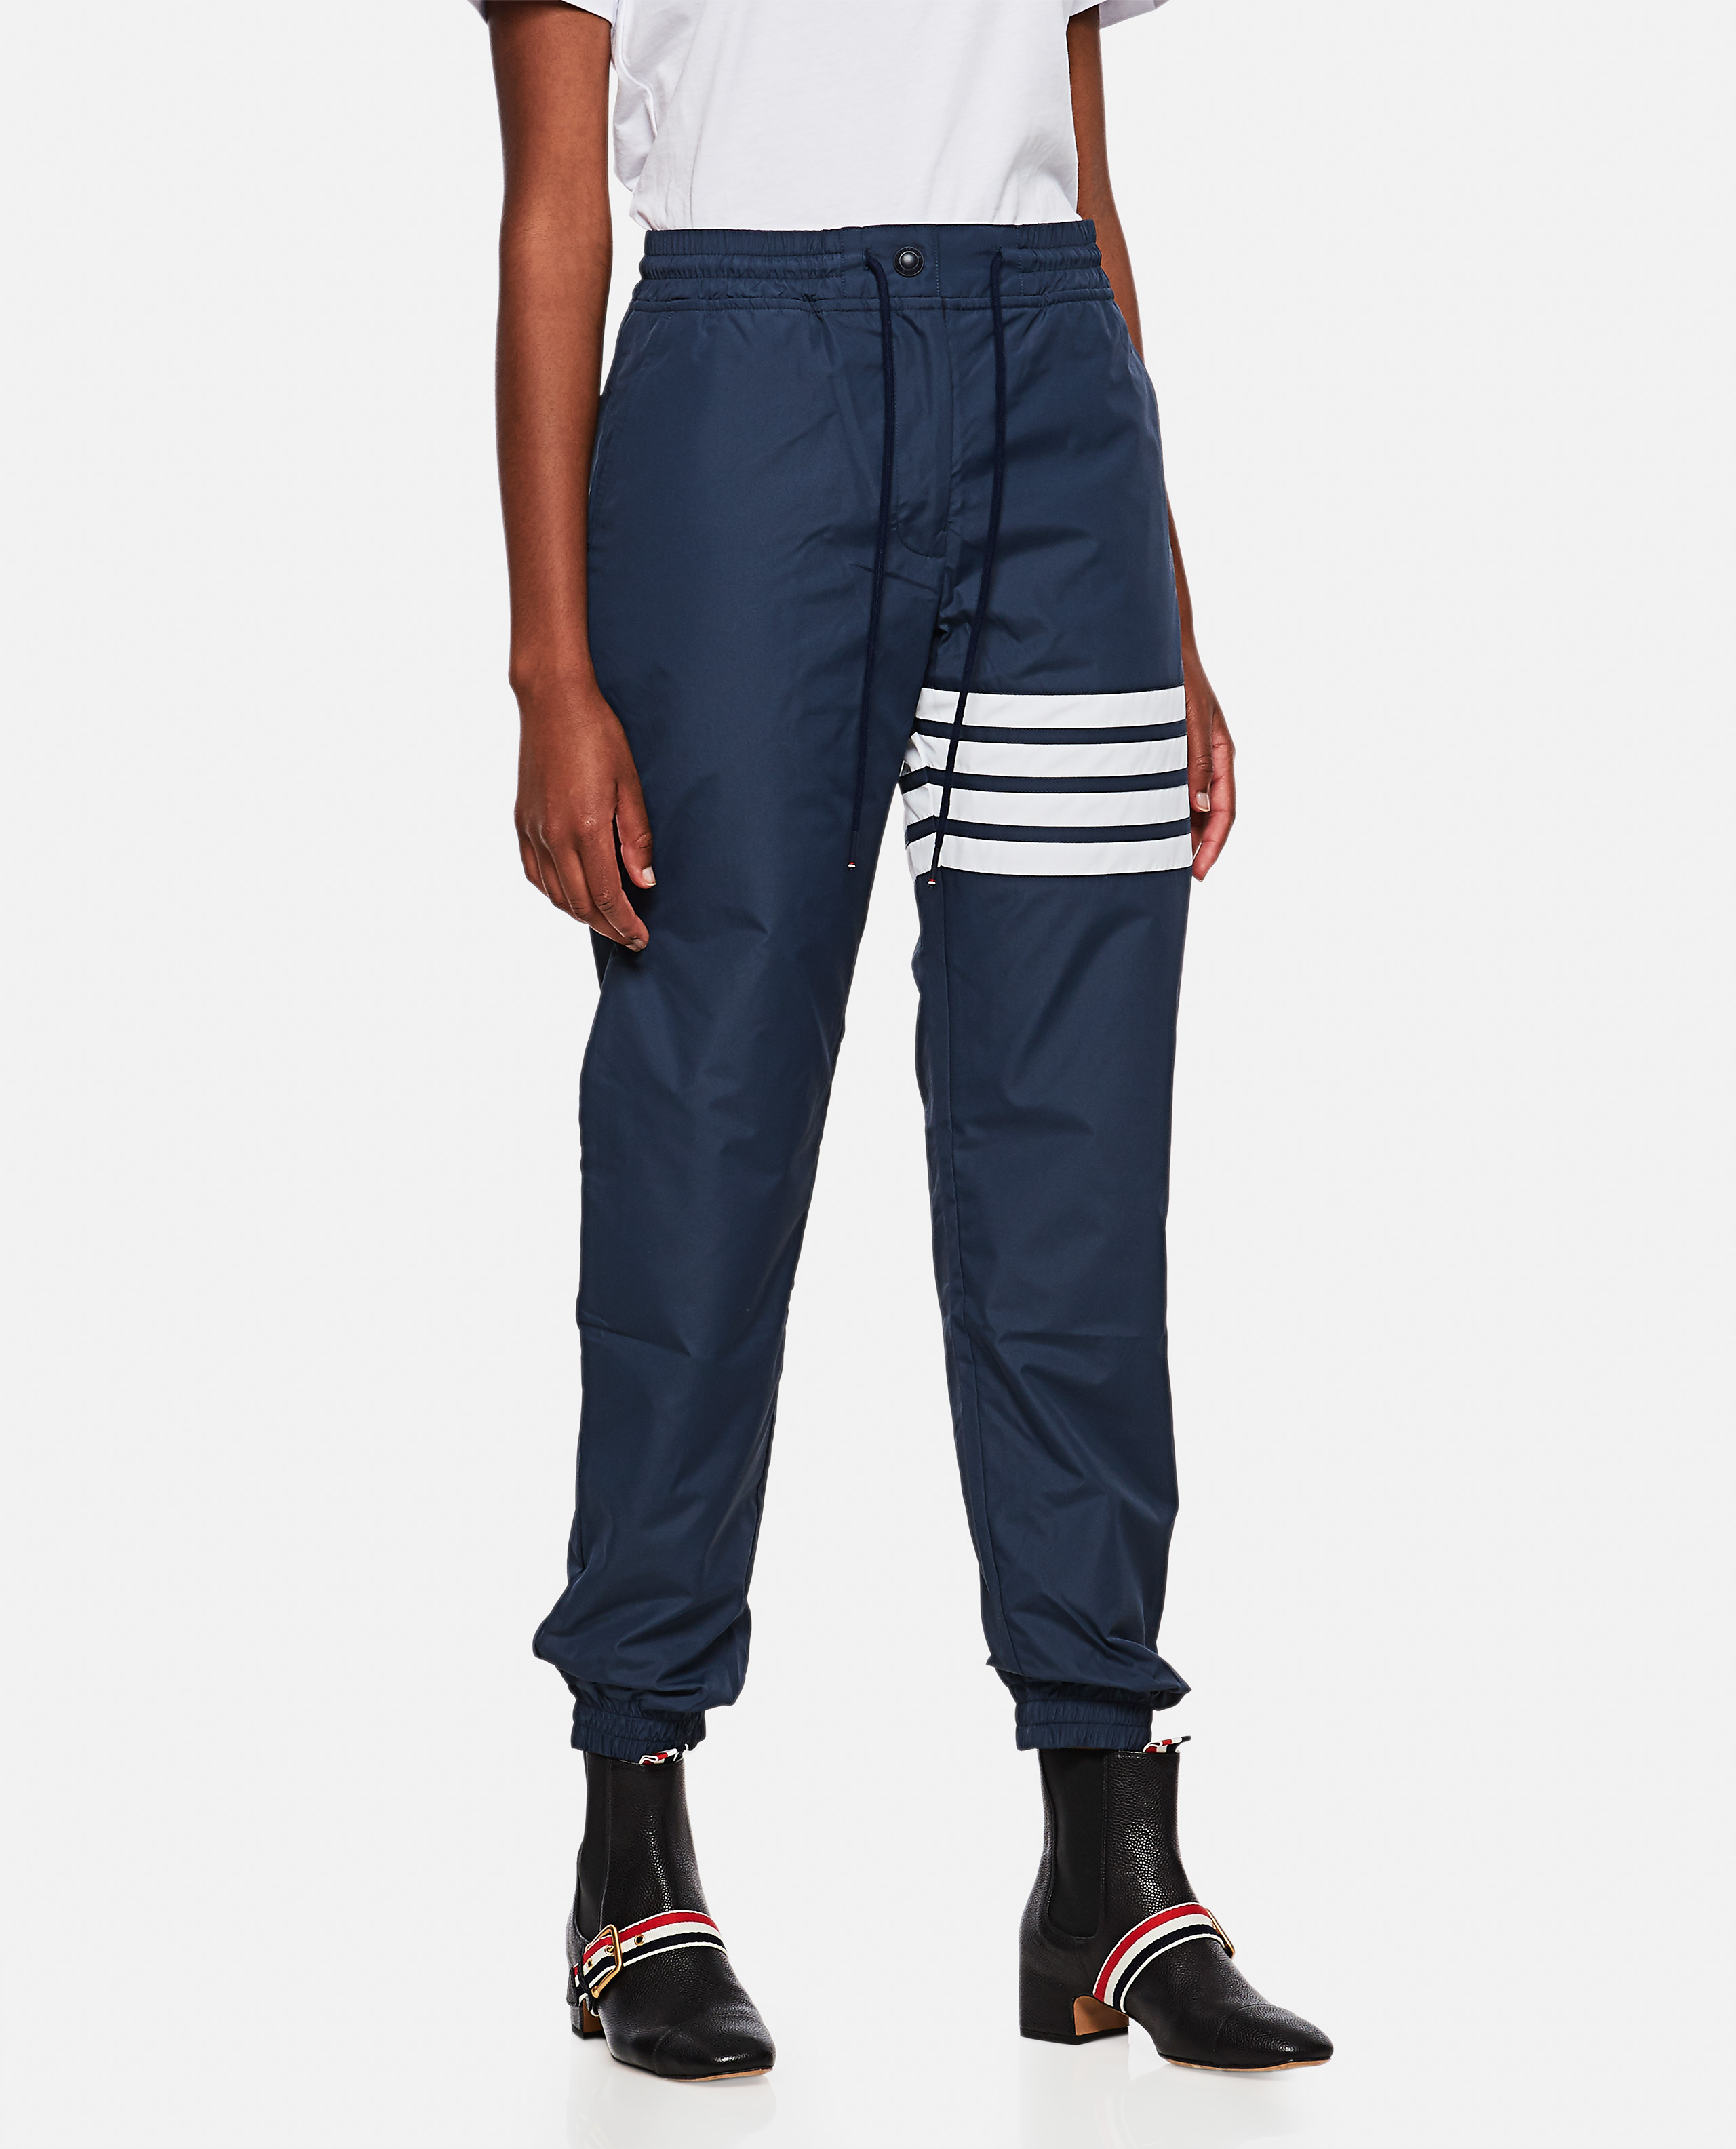 Sports trousers with stripes